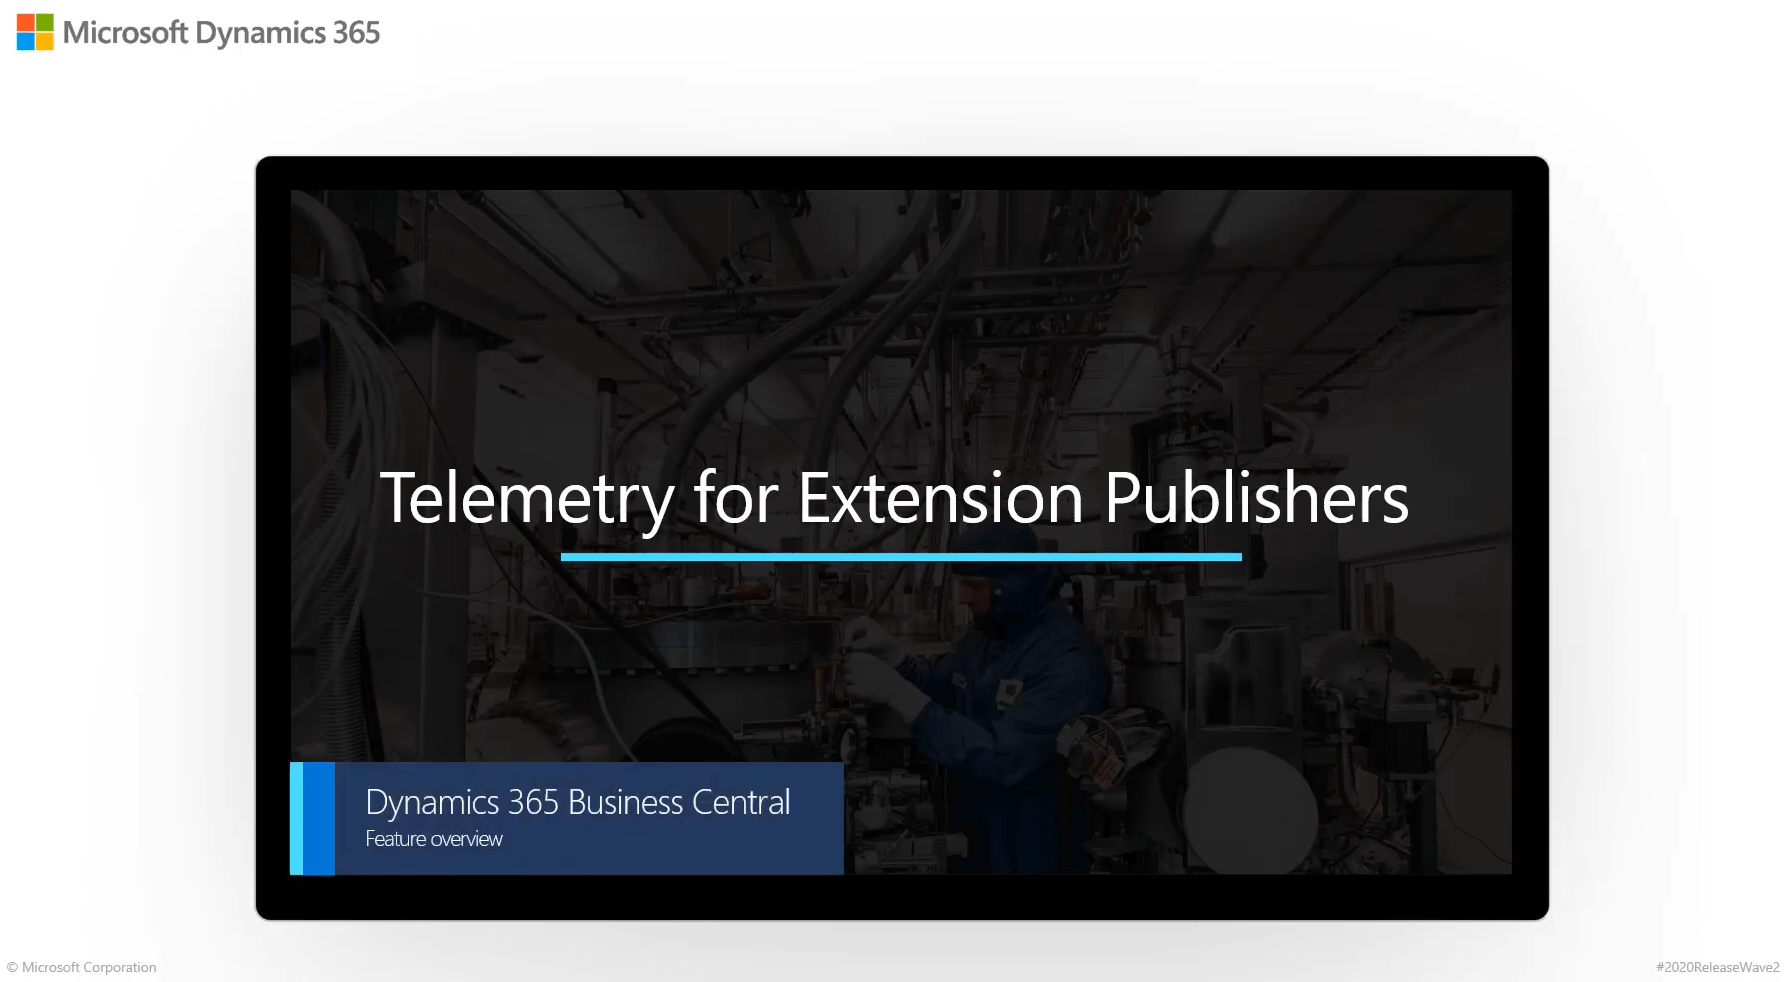 Telemetry for Extension Publishers